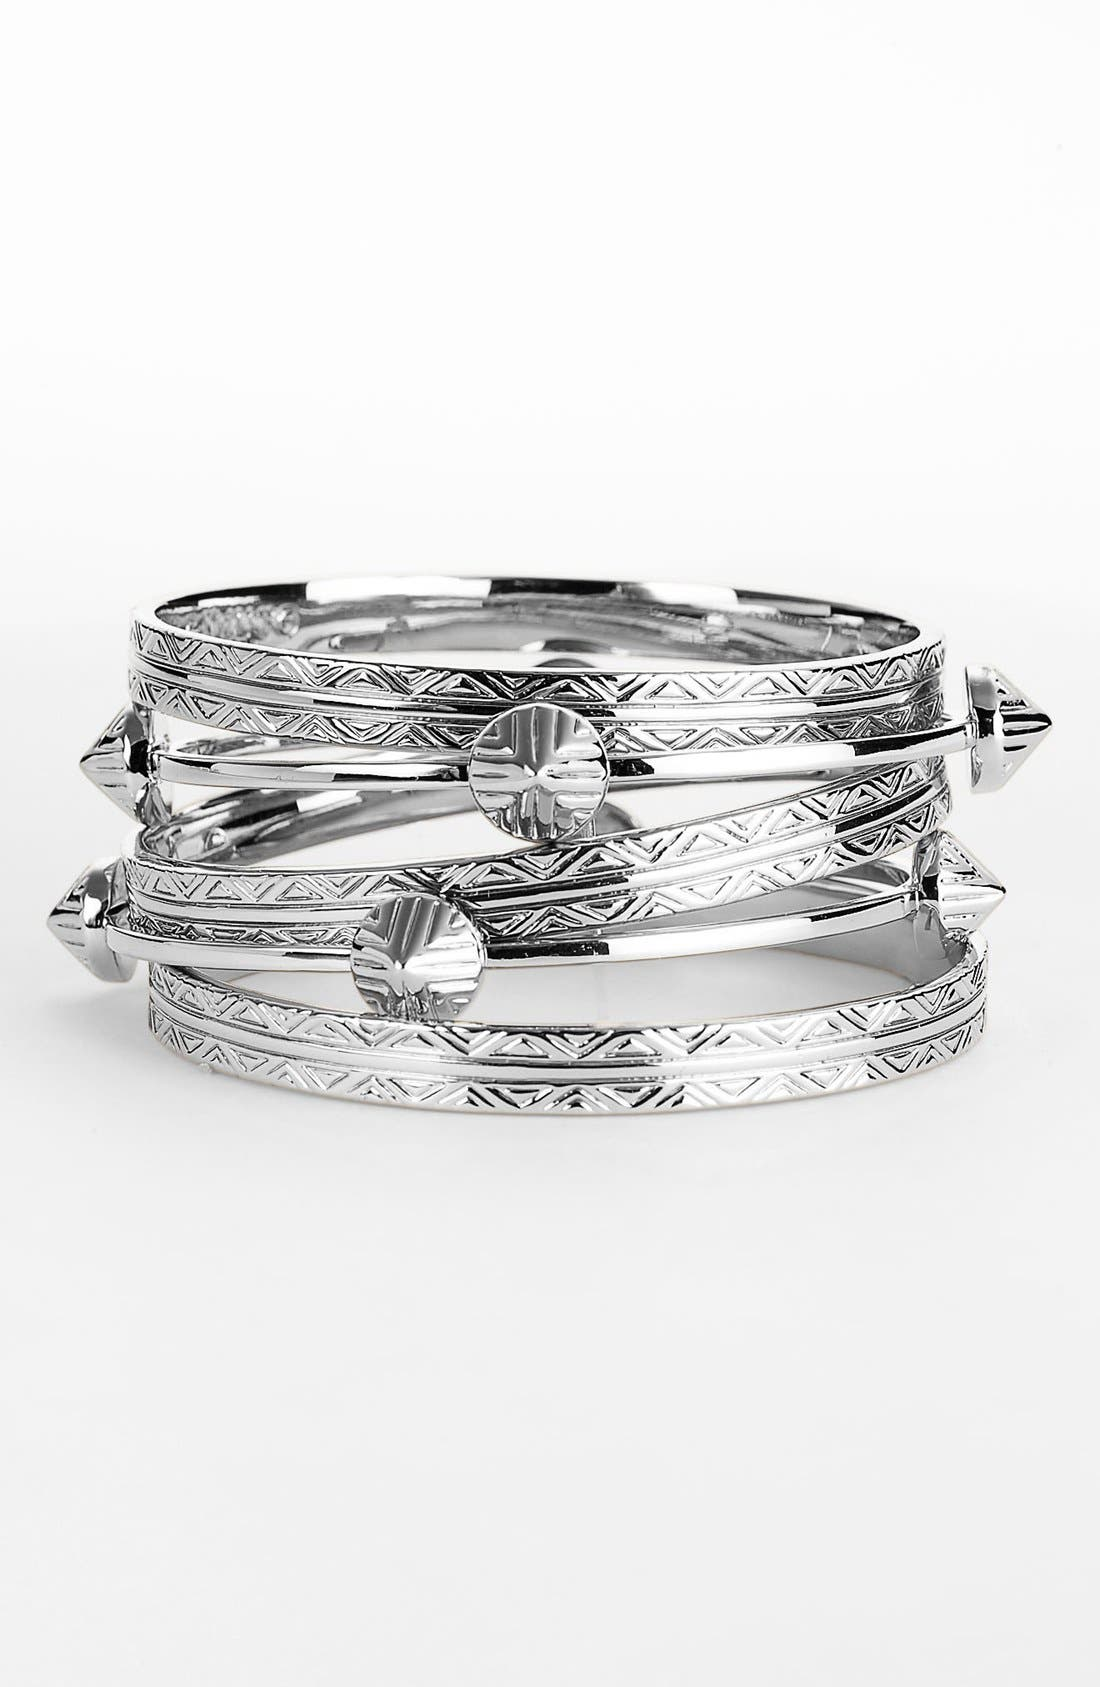 Alternate Image 1 Selected - Vince Camuto 'Tribal Fusion' Bangles (Set of 5)